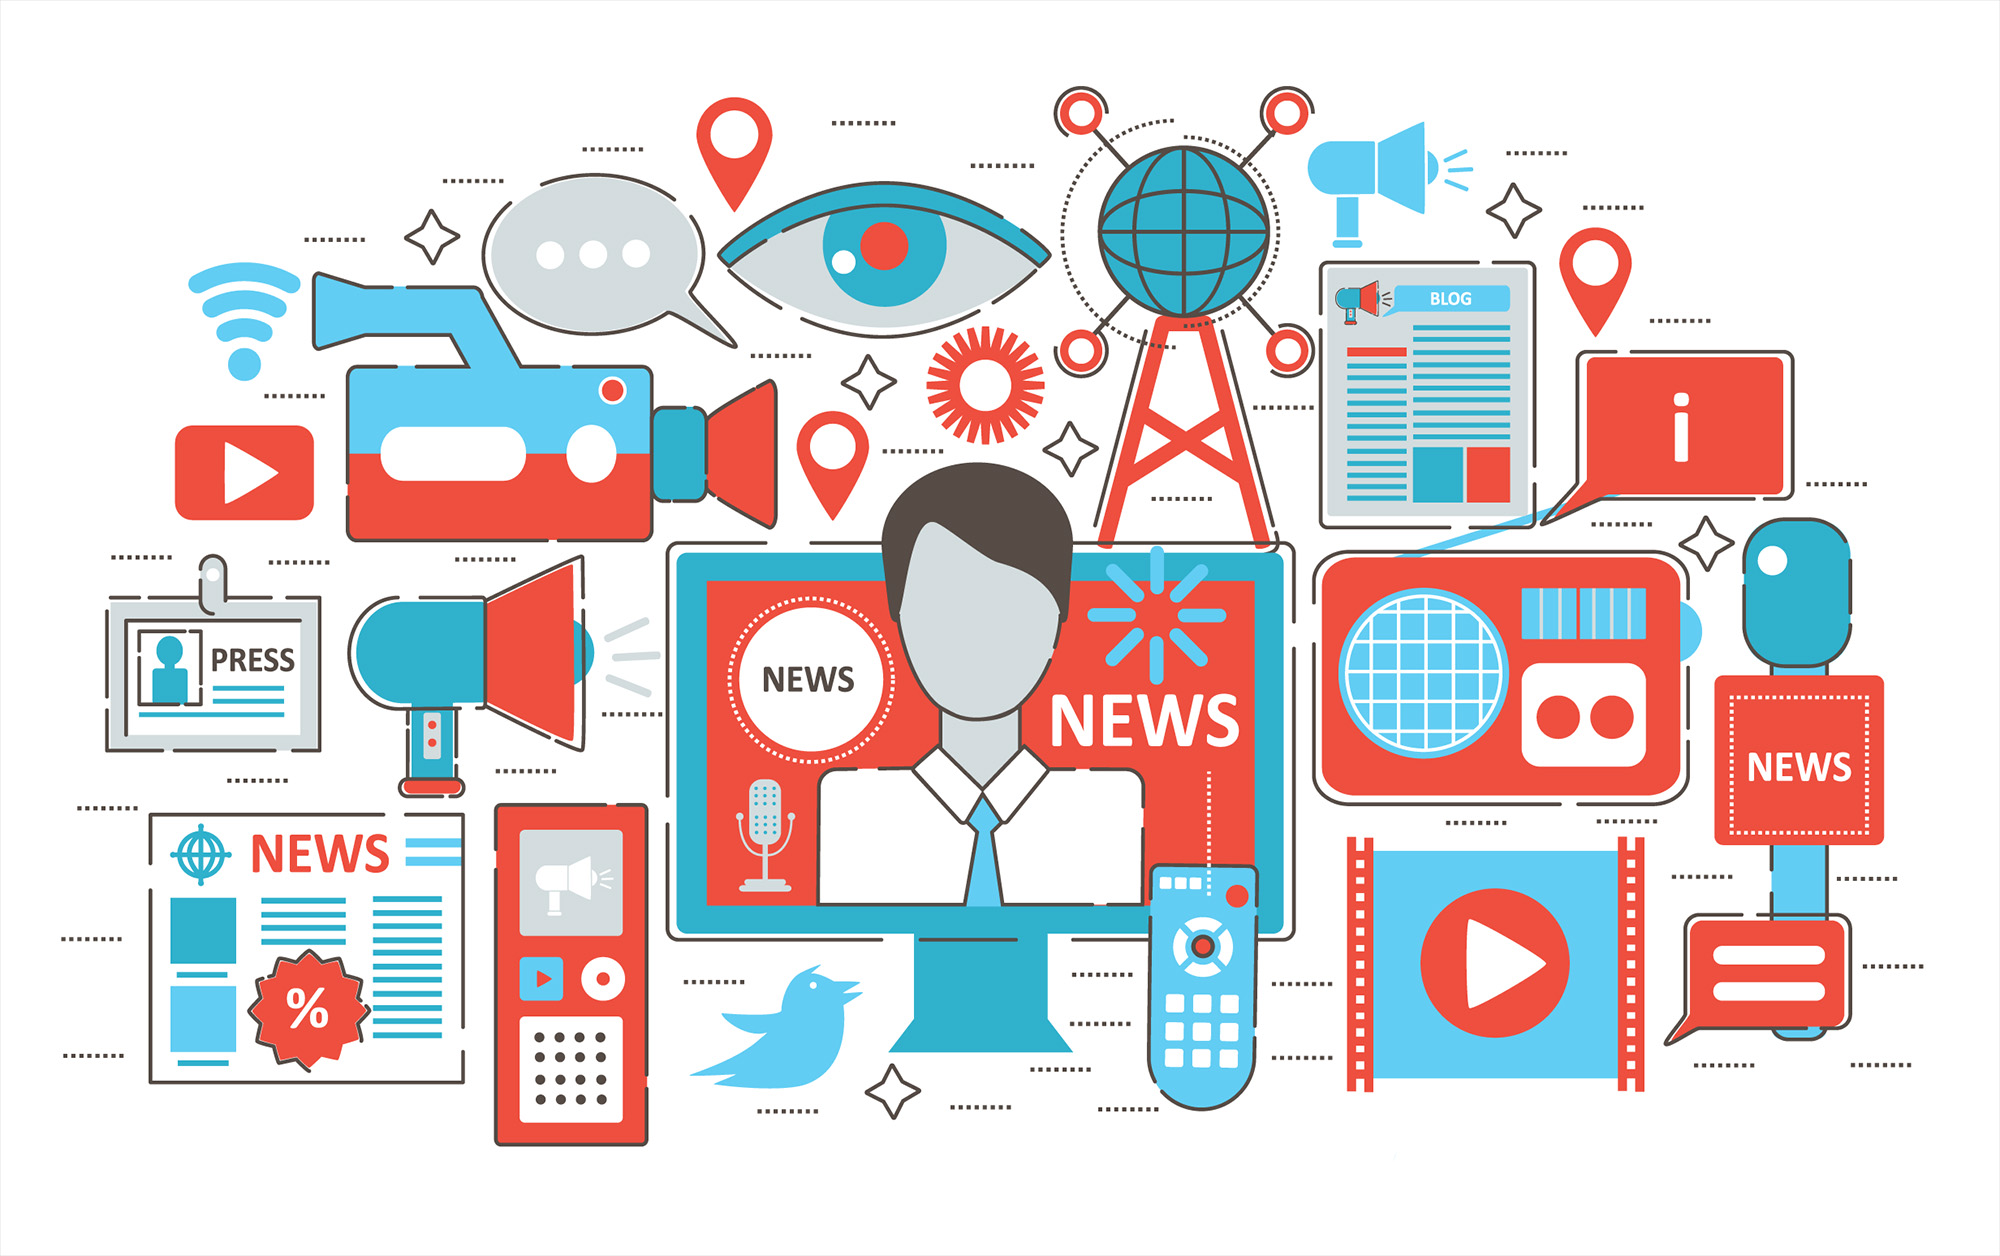 An illustration of various mass media graphics, like cameras, eyes, mobile devices, etc.